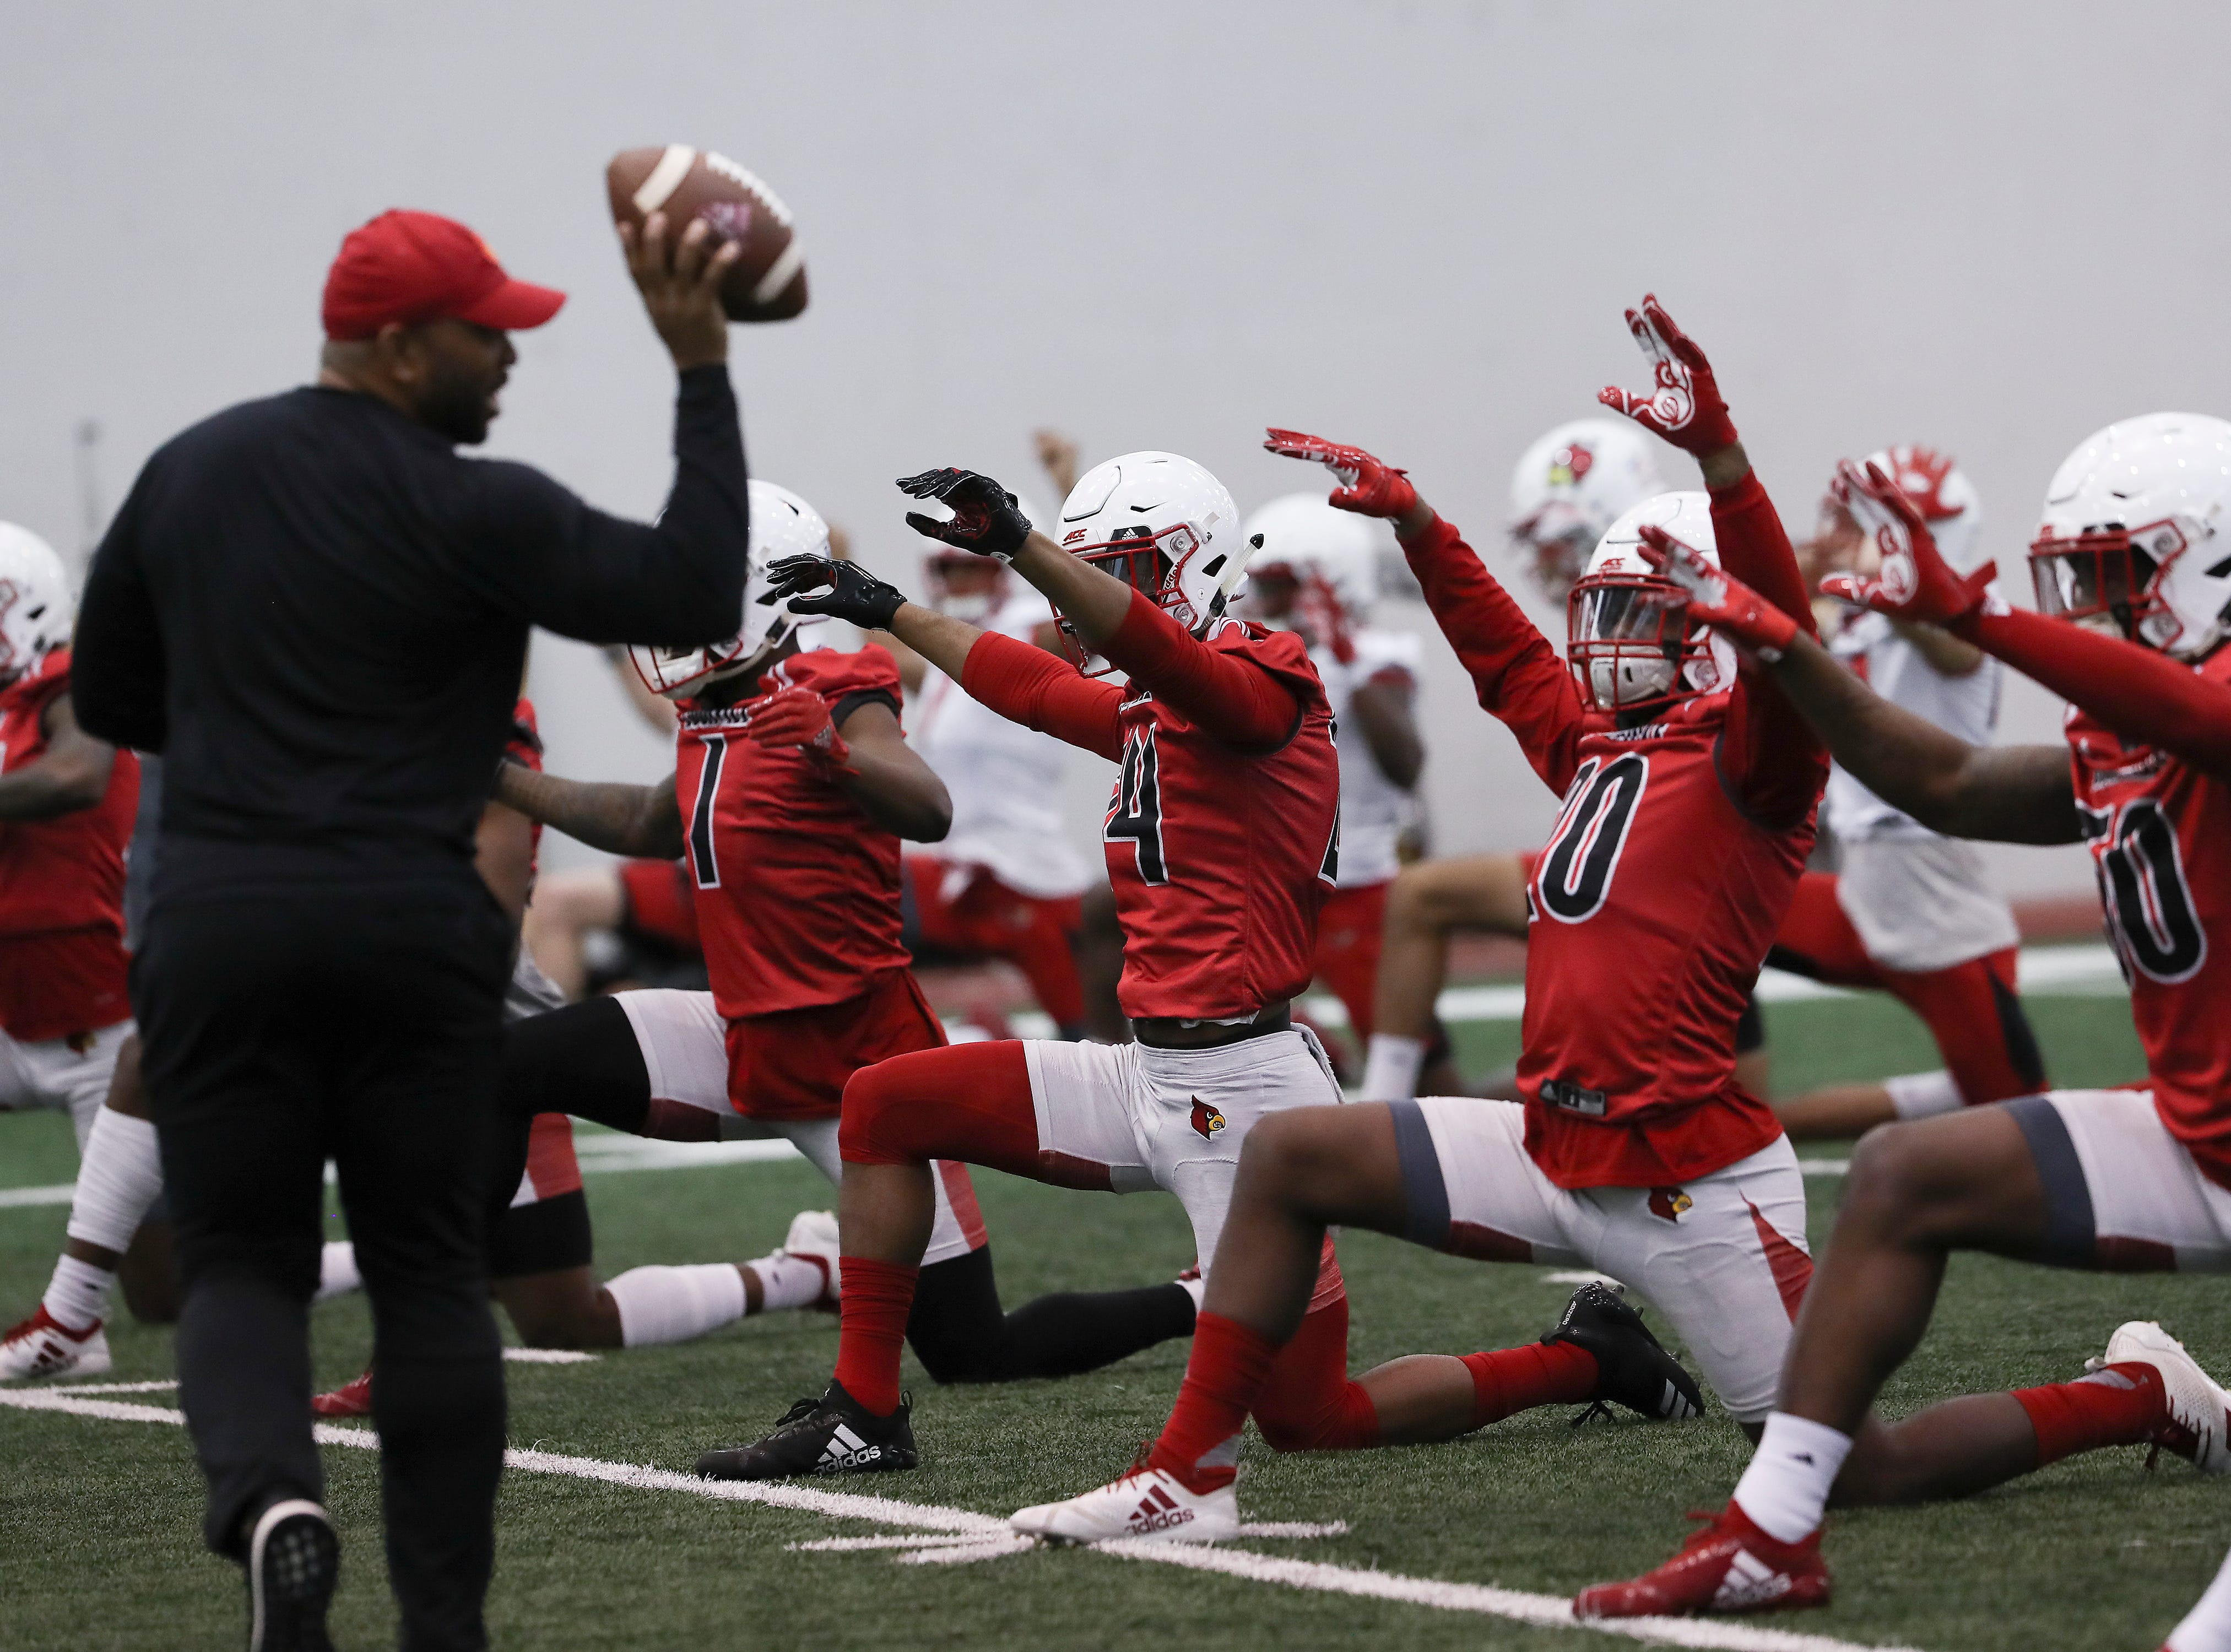 U of L's defensive secondary had a ball tossed to them while stretching during practice at the Trager Center.